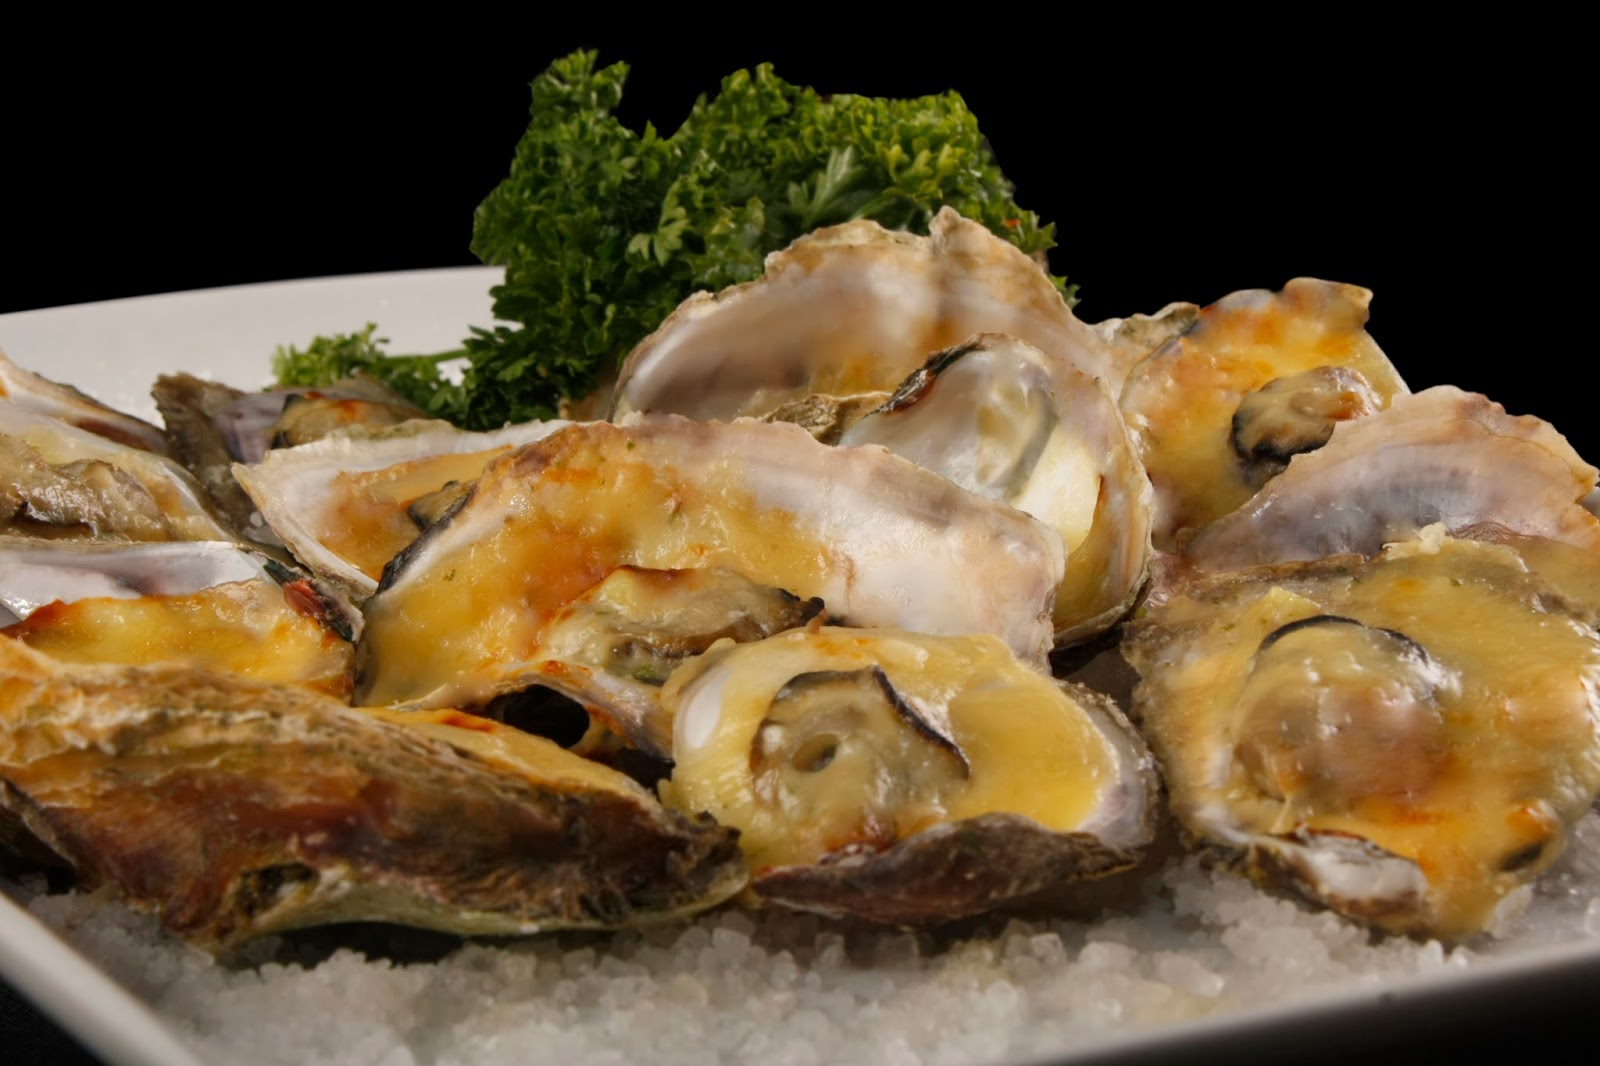 Baked Oysters with cheese & garlic